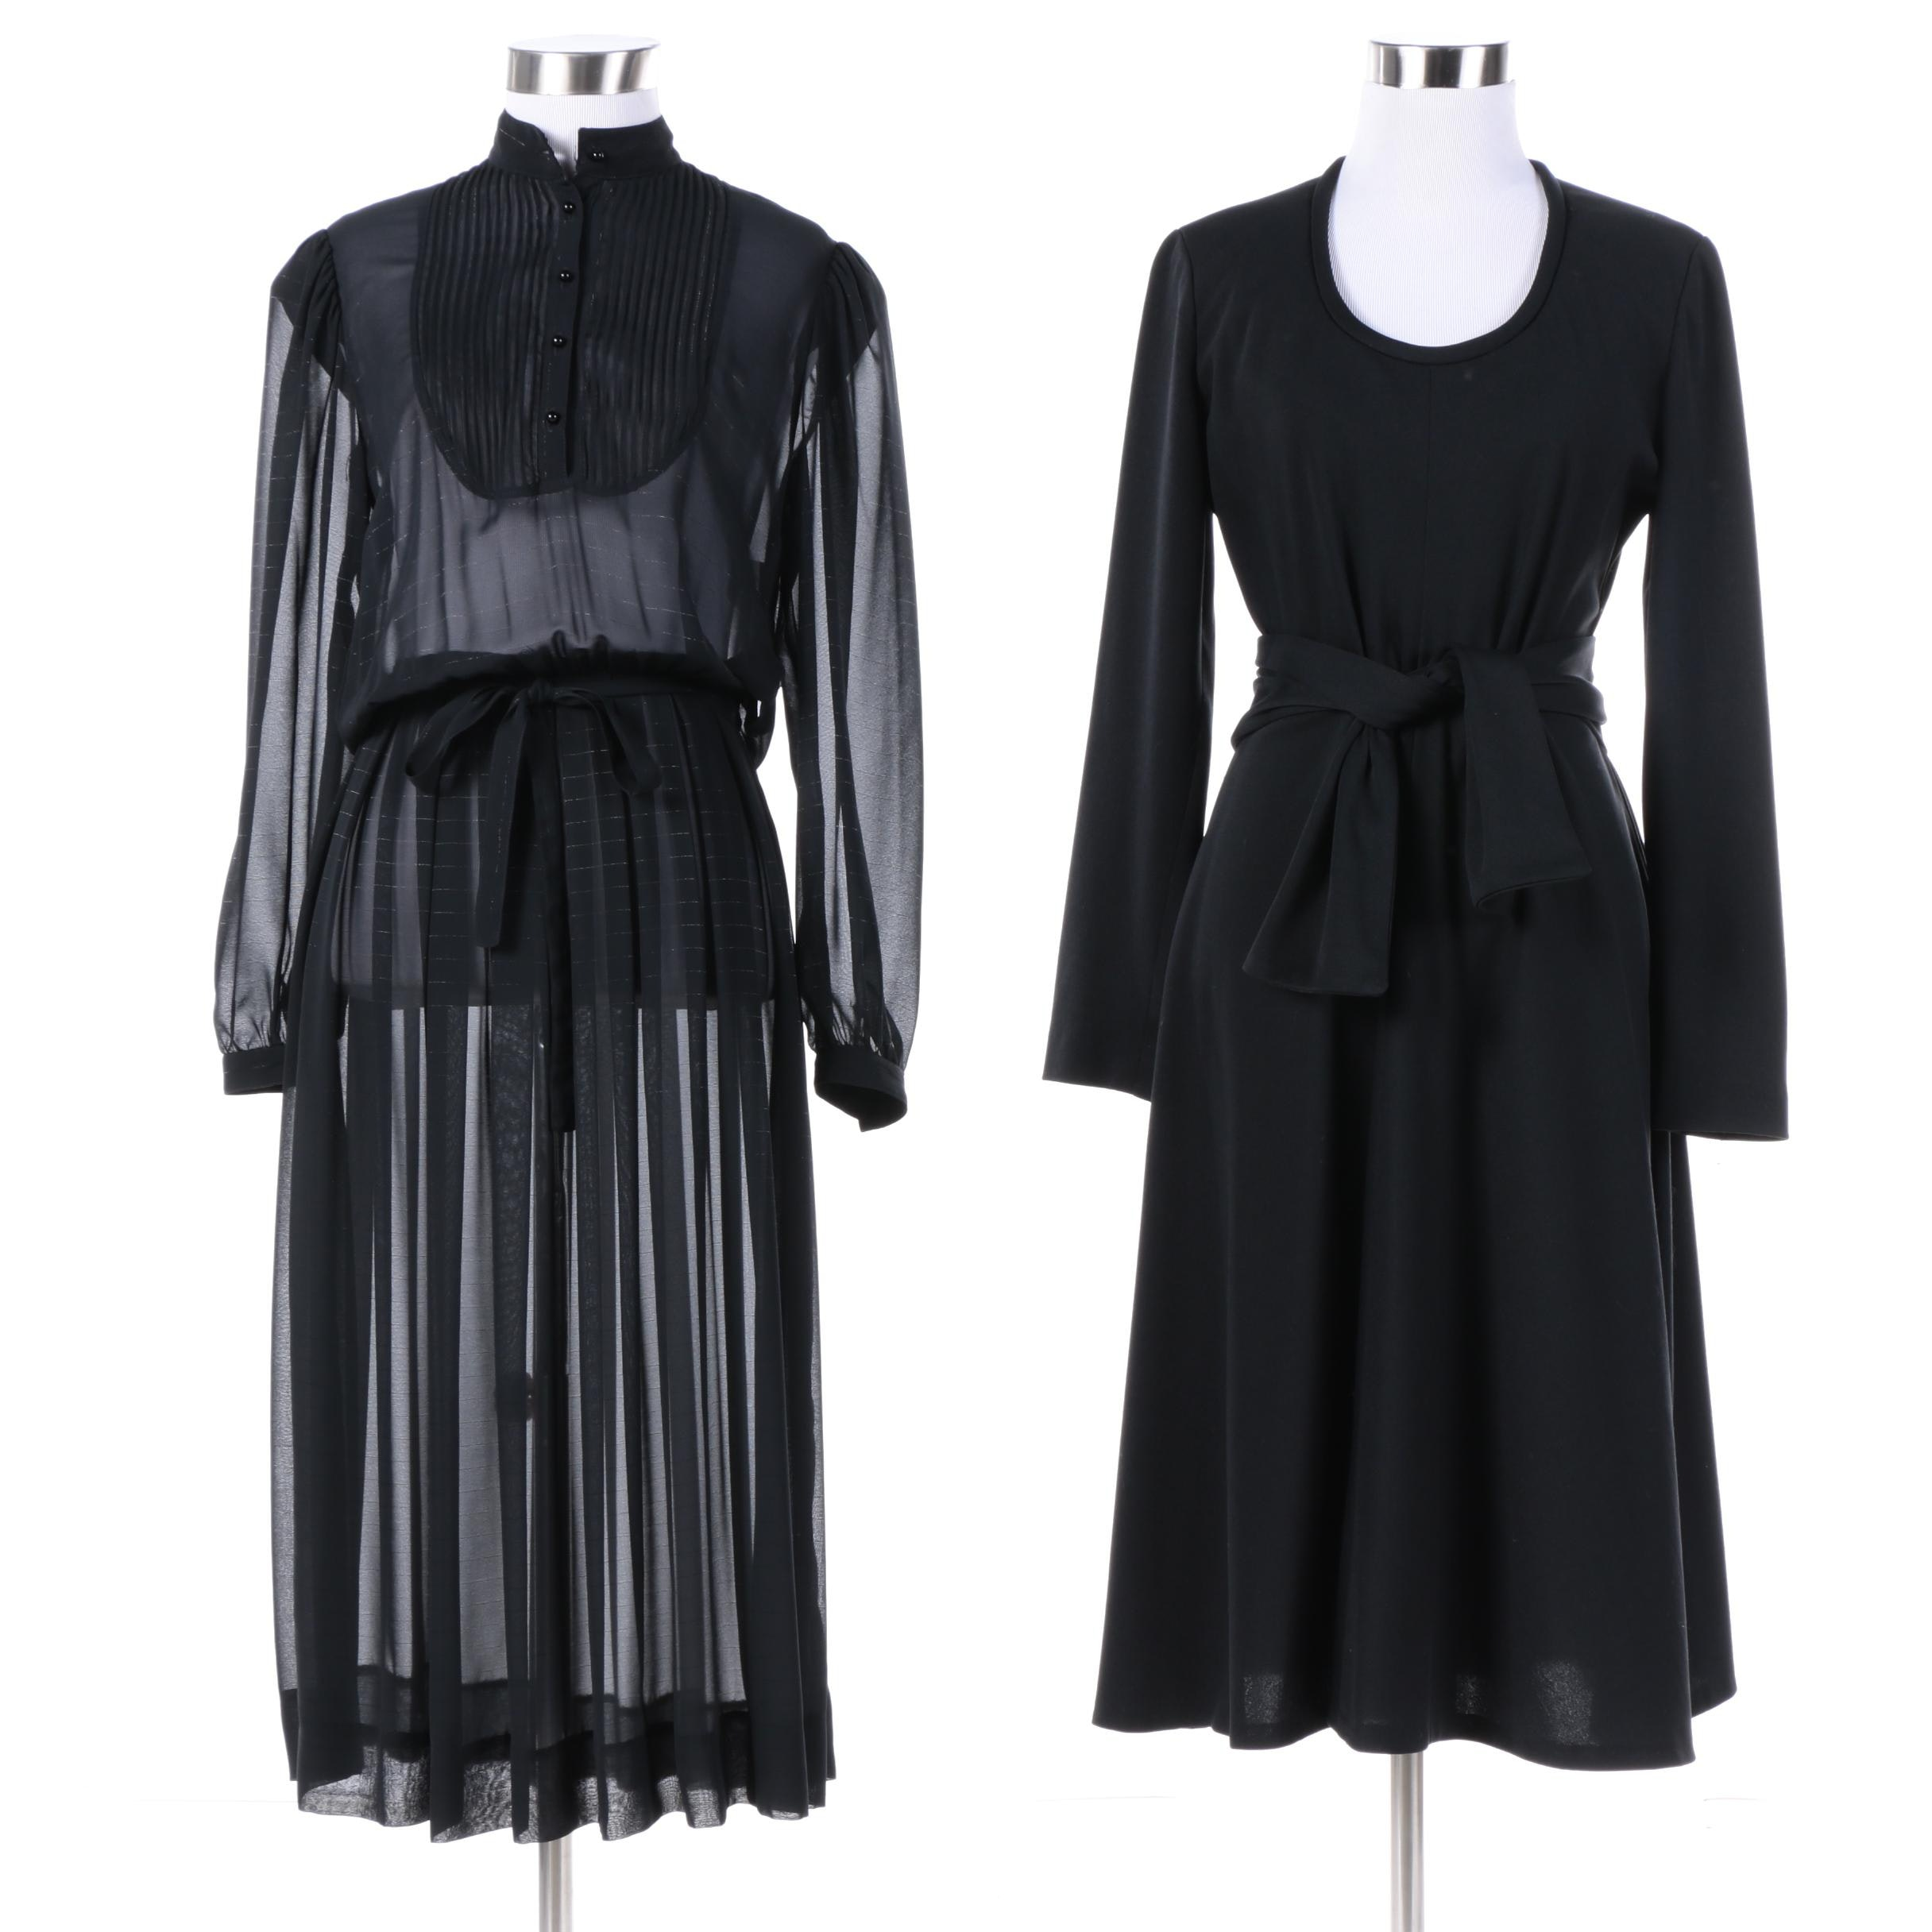 Vintage Nippon Boutique and Romantico Black Dresses